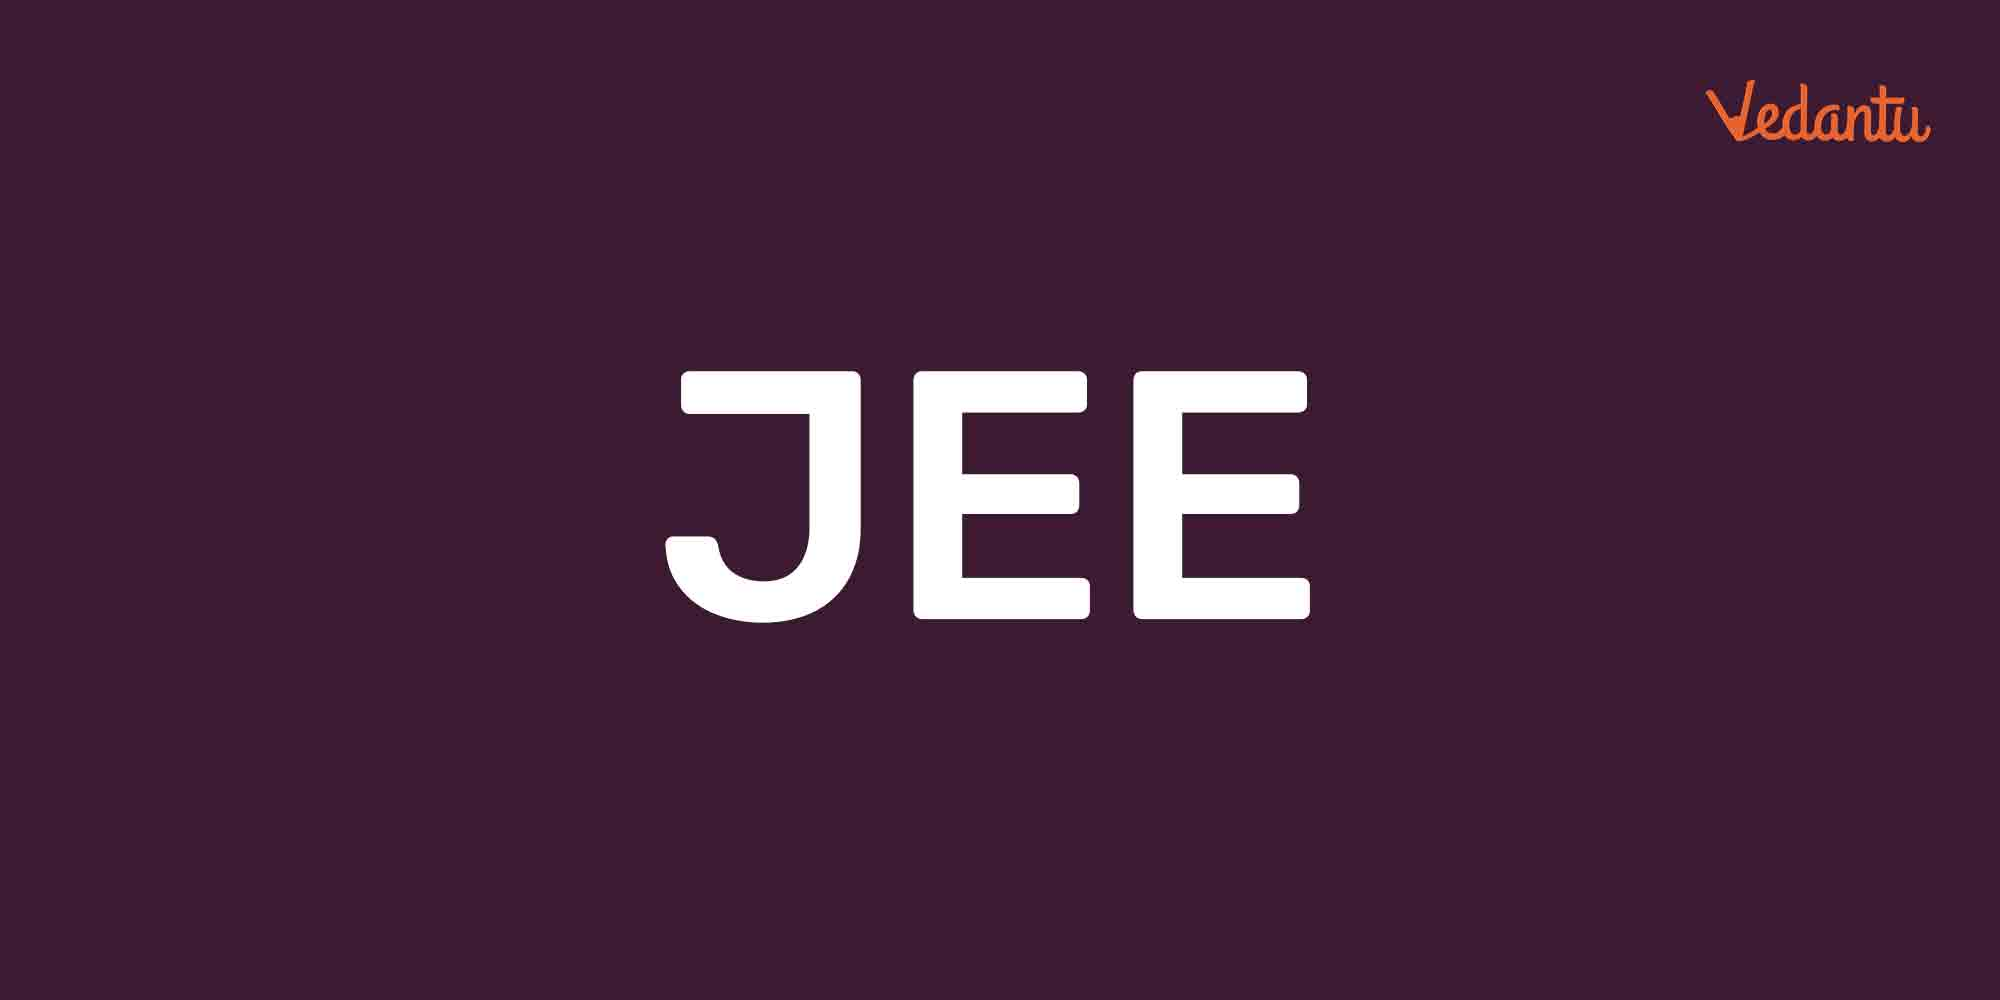 How to Revise JEE Mathematics Syllabus in 4 Weeks